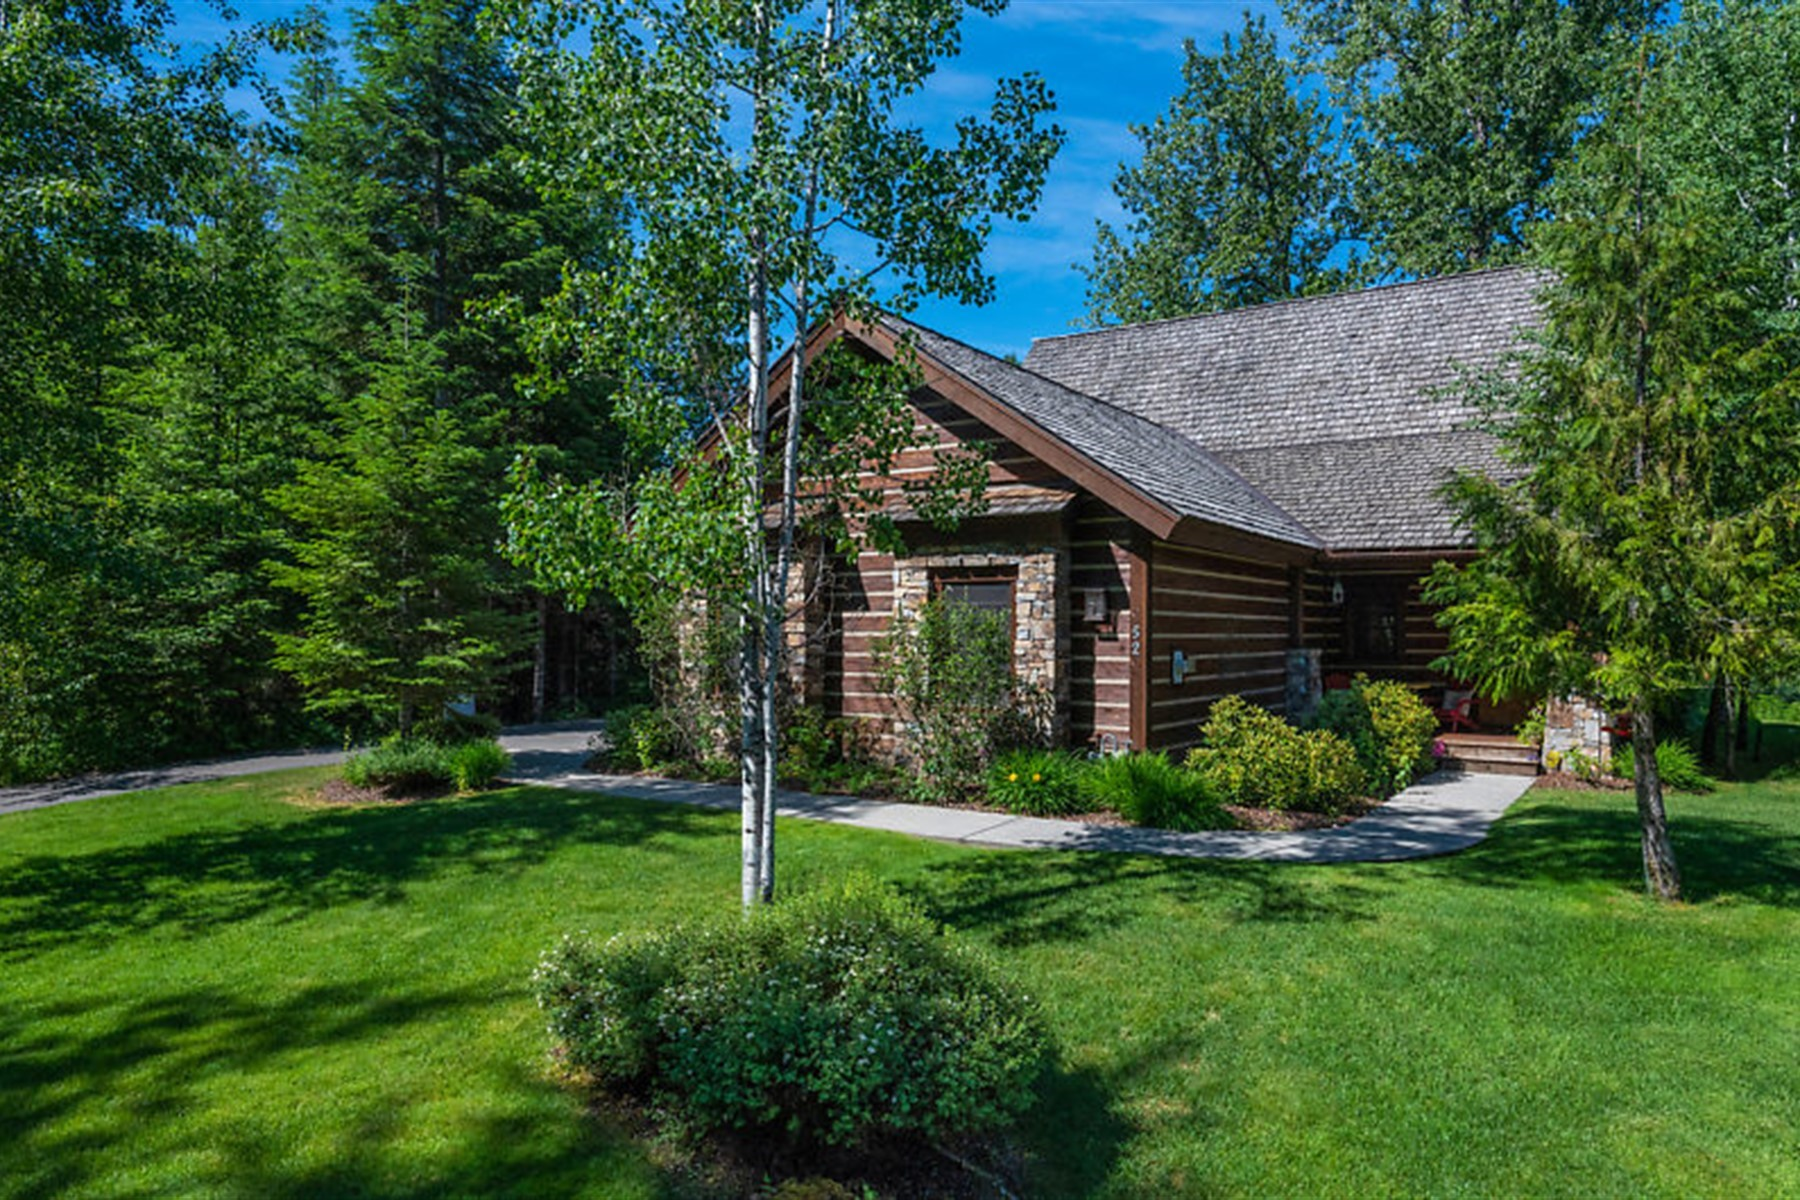 Single Family Homes for Sale at The Idaho Club Lodge Home 52 Waterdance Way Sandpoint, Idaho 83864 United States